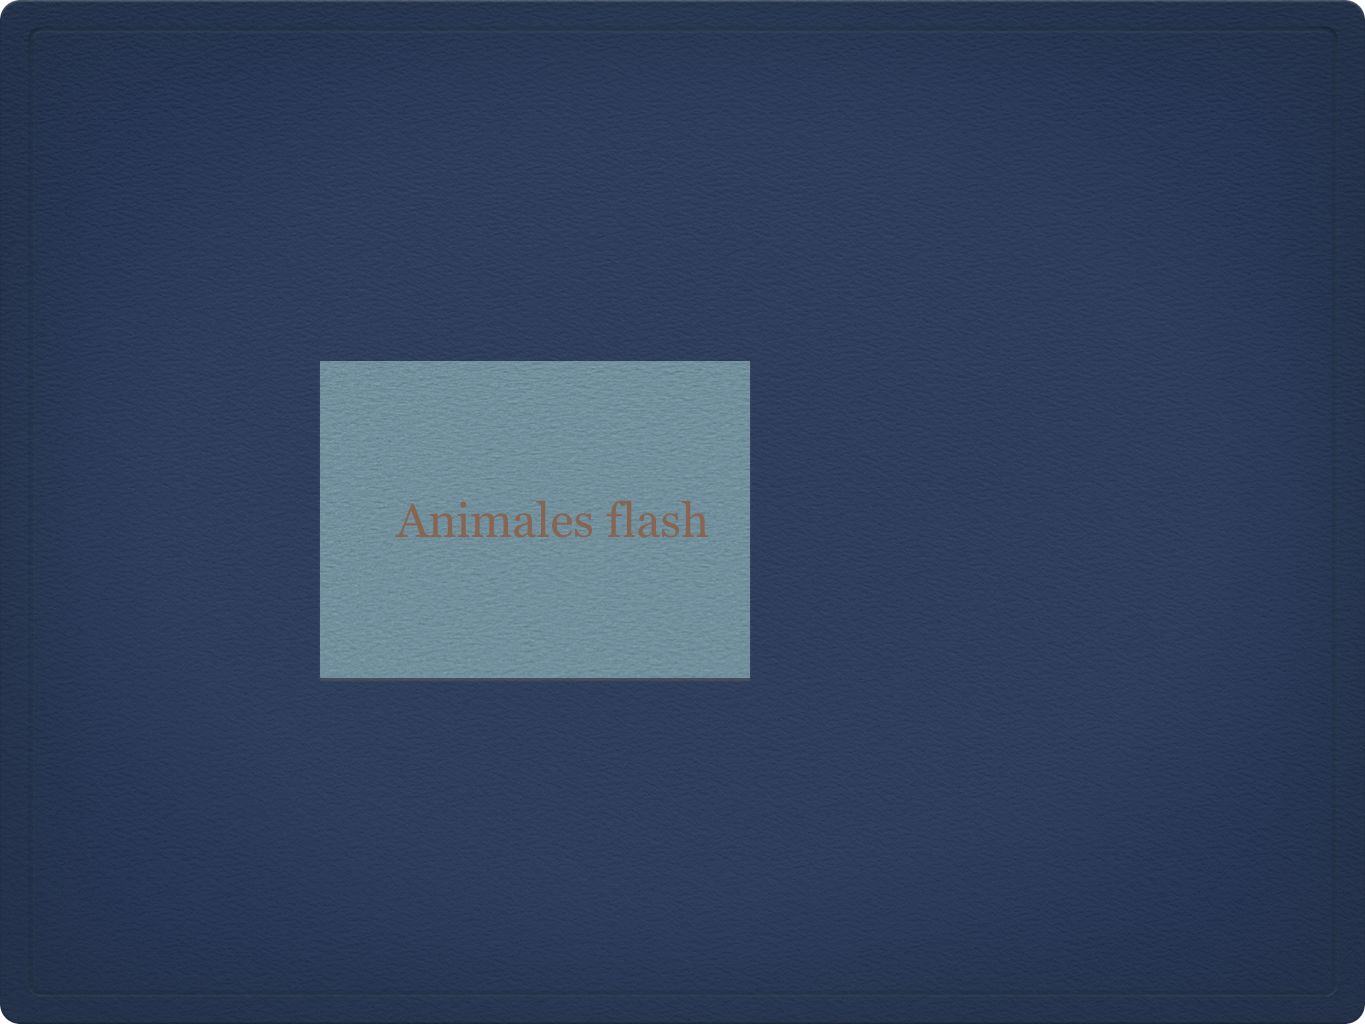 Animales flash